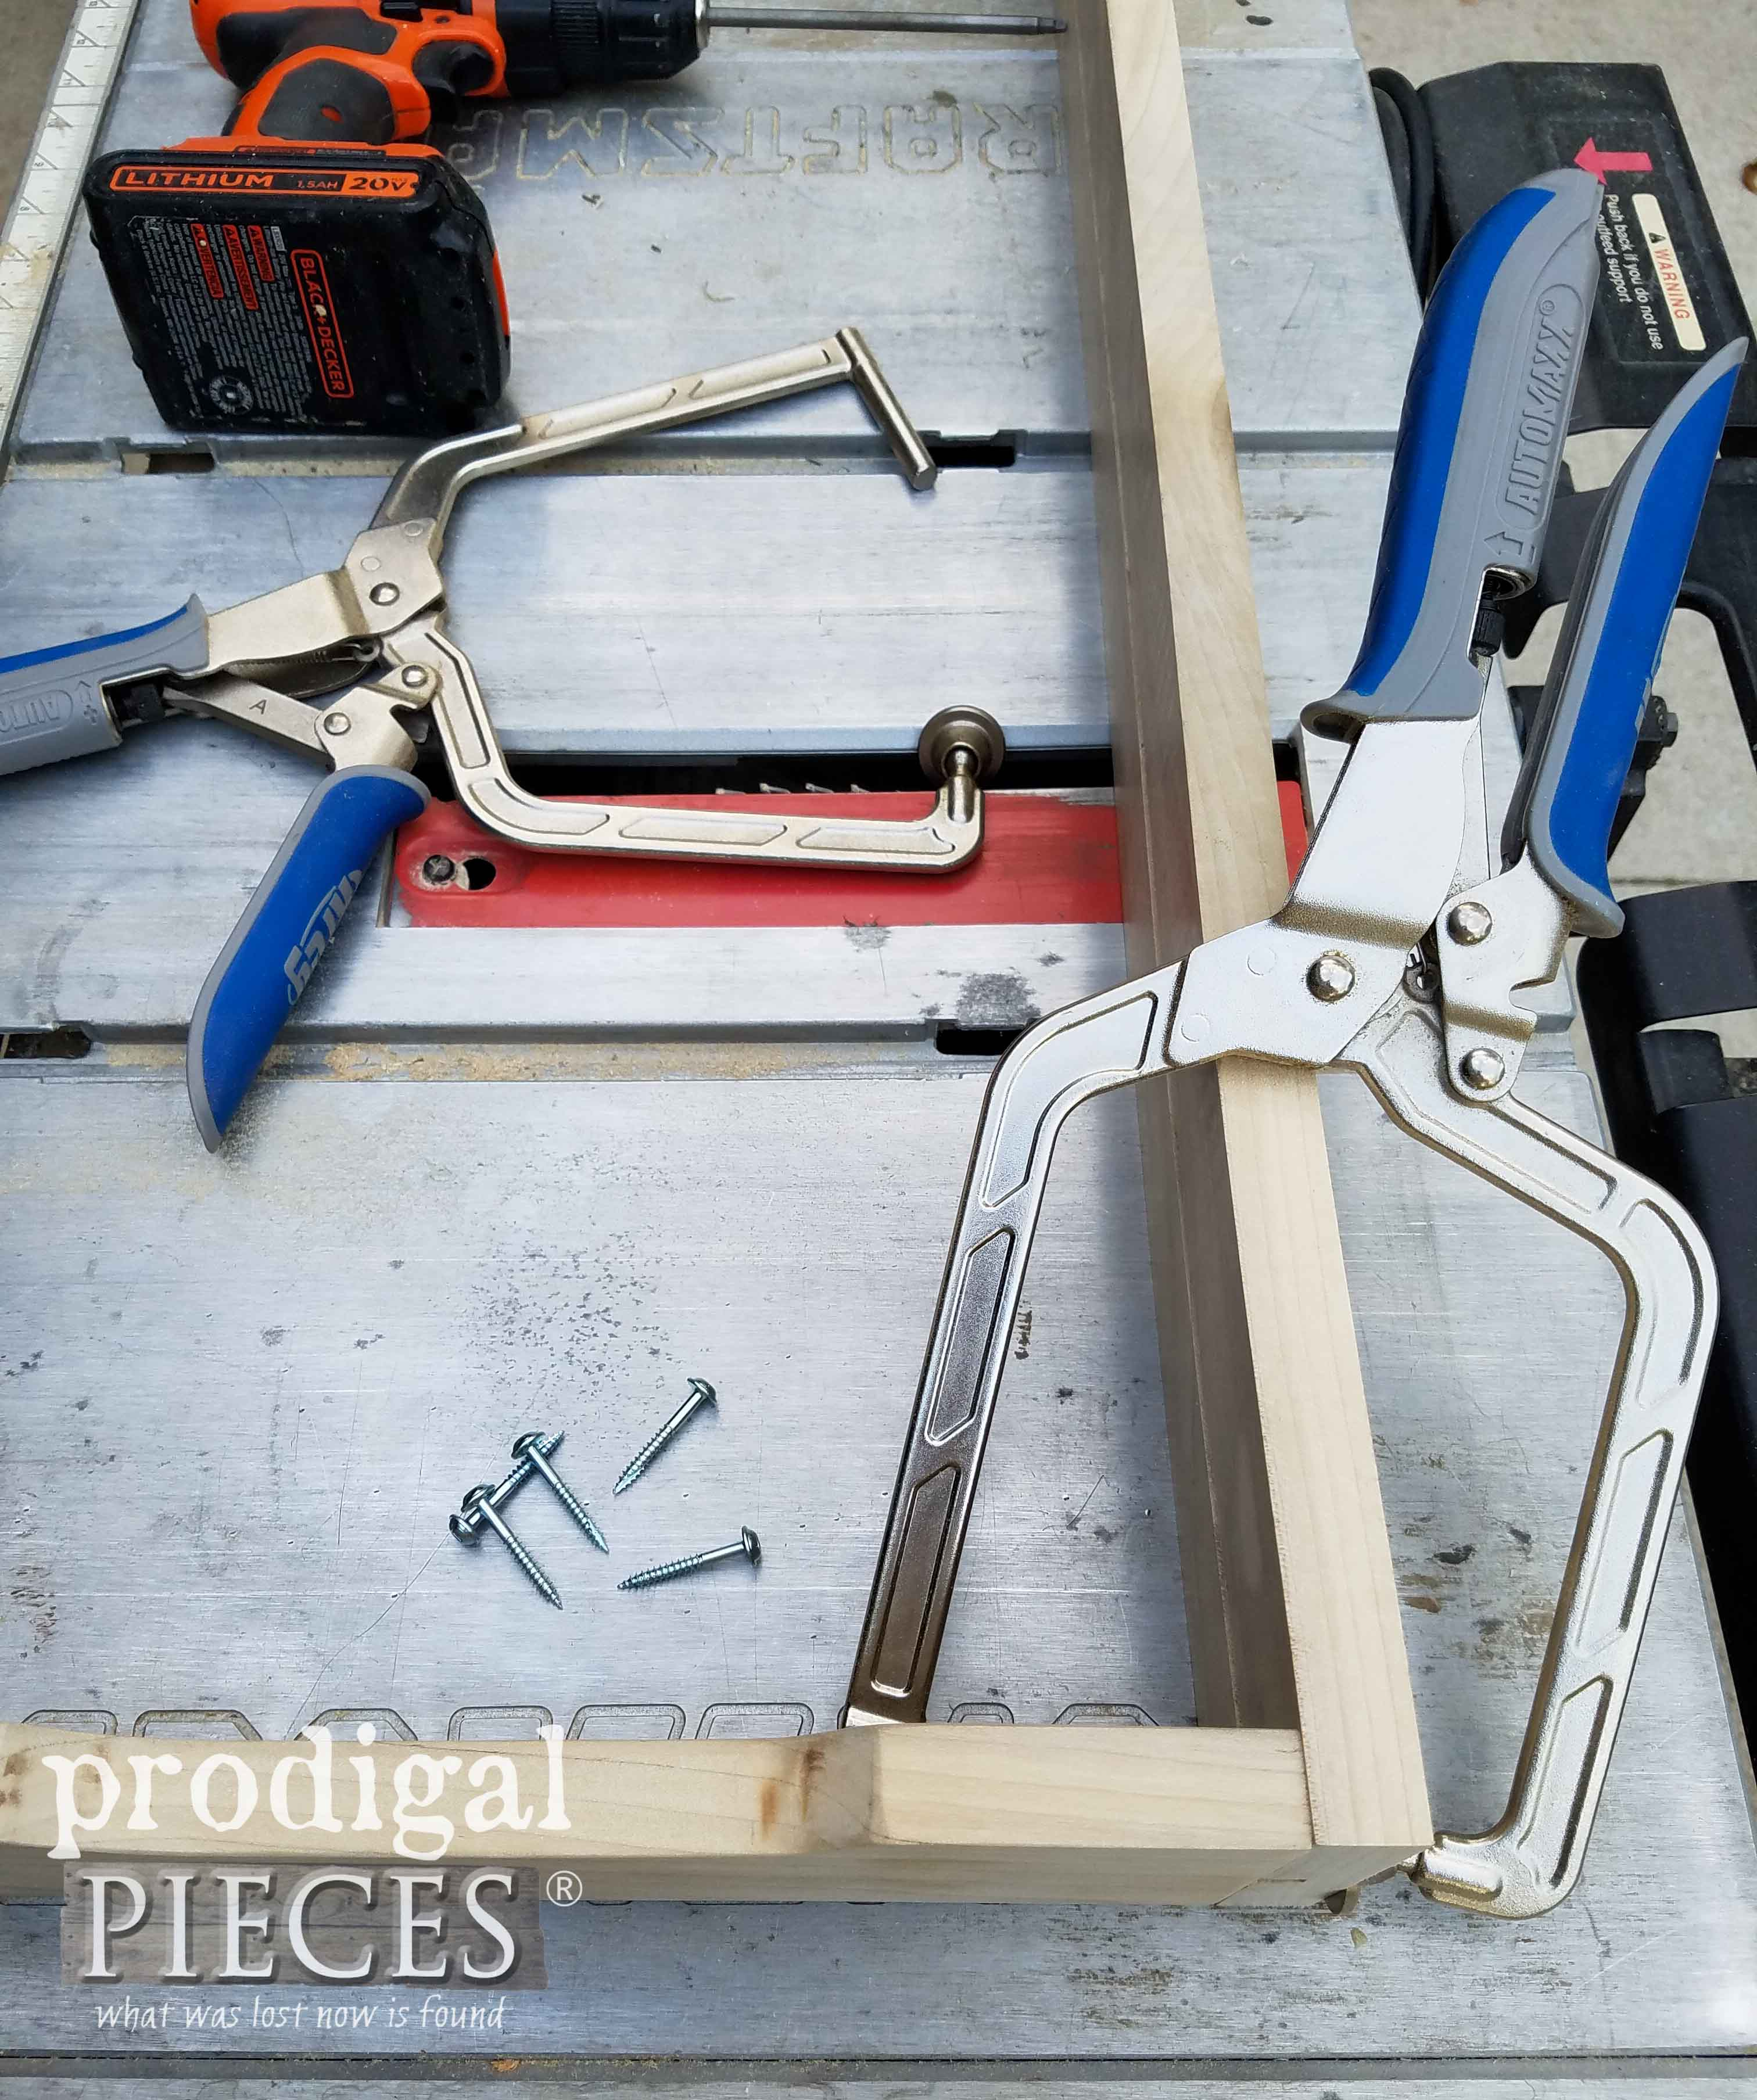 Kreg Jig Clamps for Assembly | prodigalpieces.com